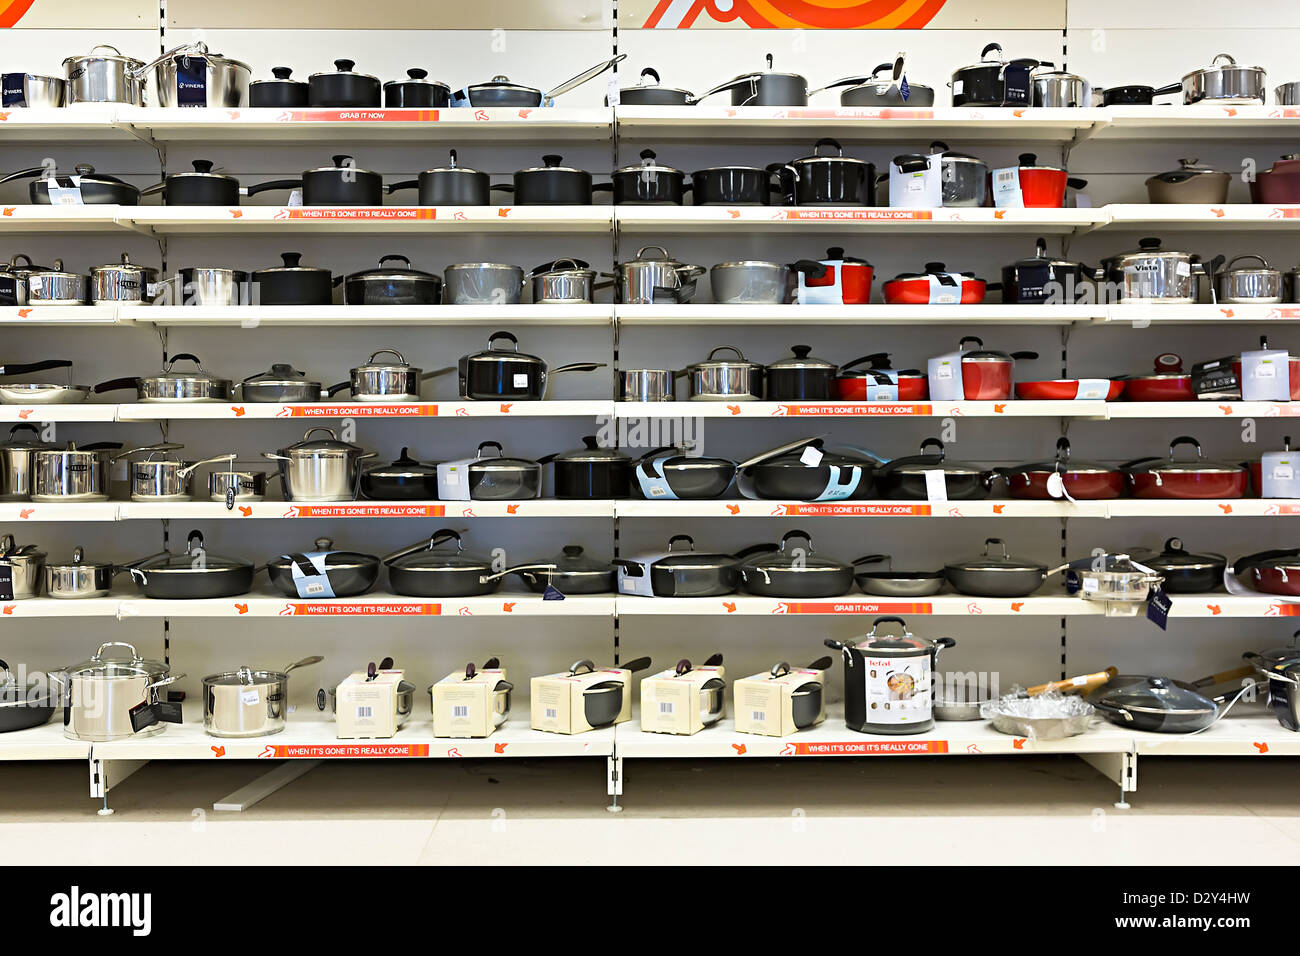 Shelves in shop selling cookware, UK - Stock Image